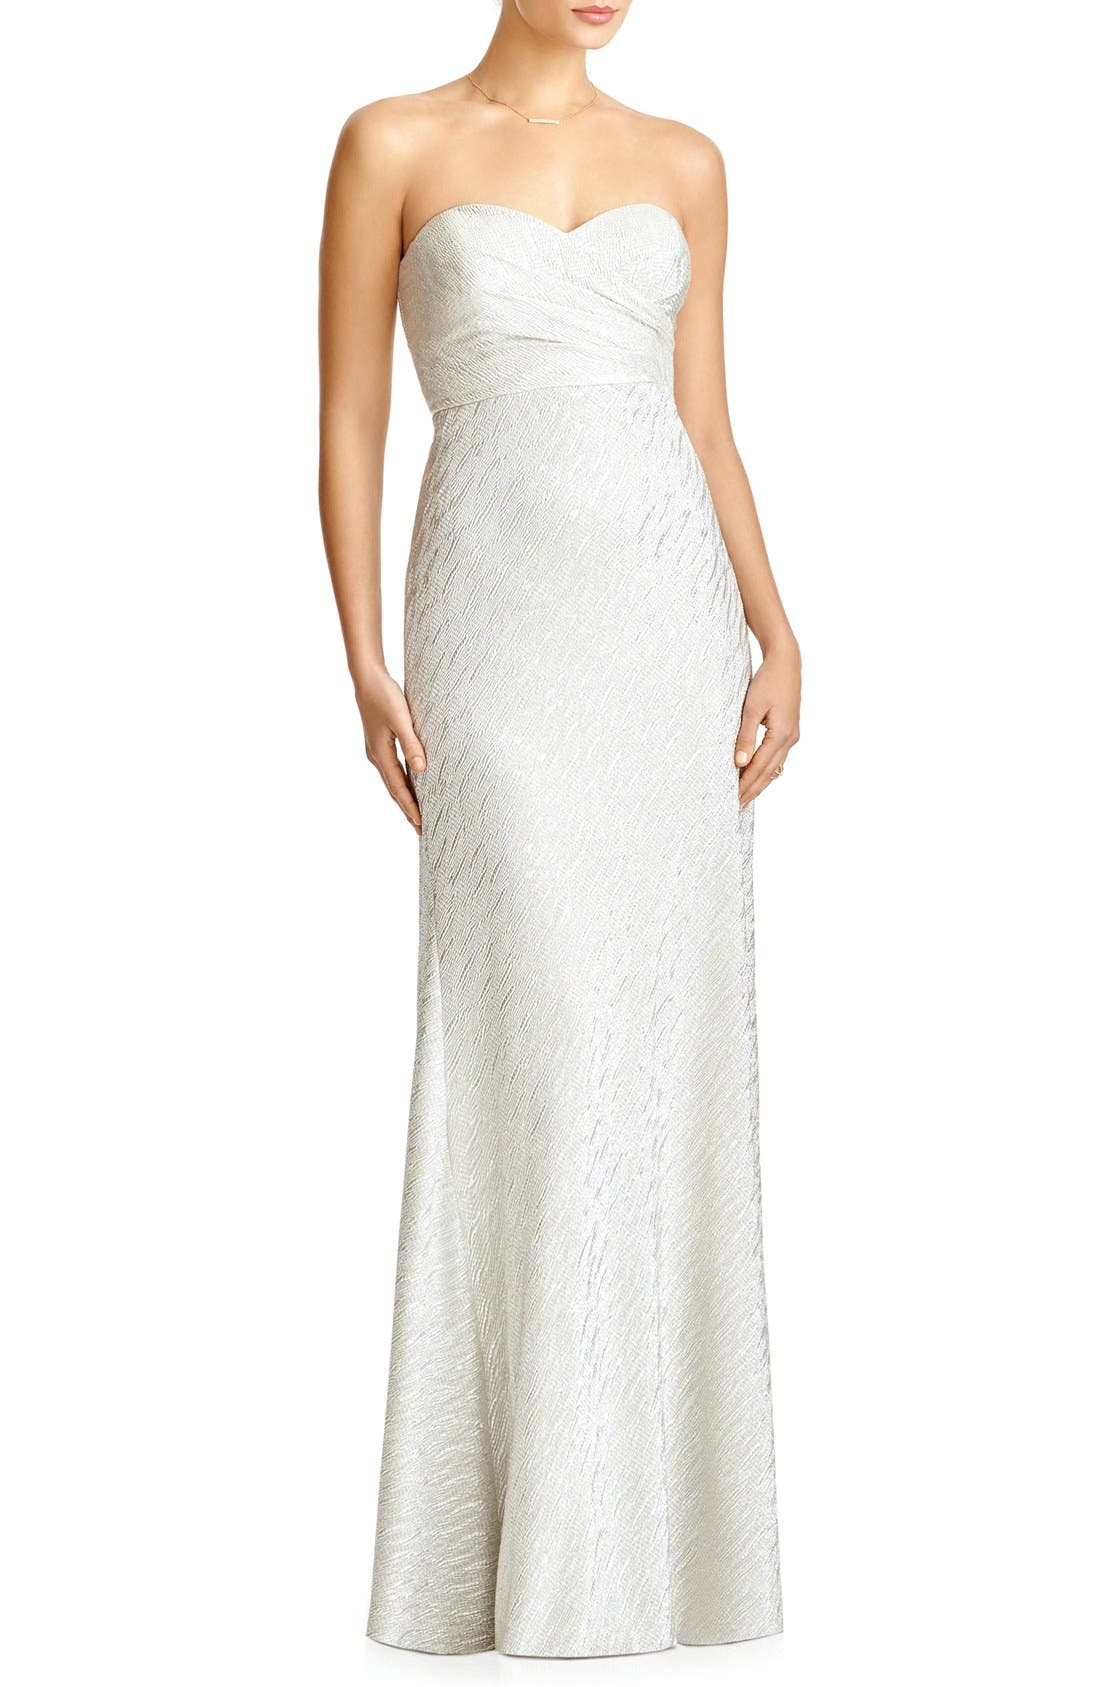 JY JENNY YOO, 'Soho' Metallic Strapless Empire Waist Gown, Alternate thumbnail 3, color, CHAMPAGNE SILVER